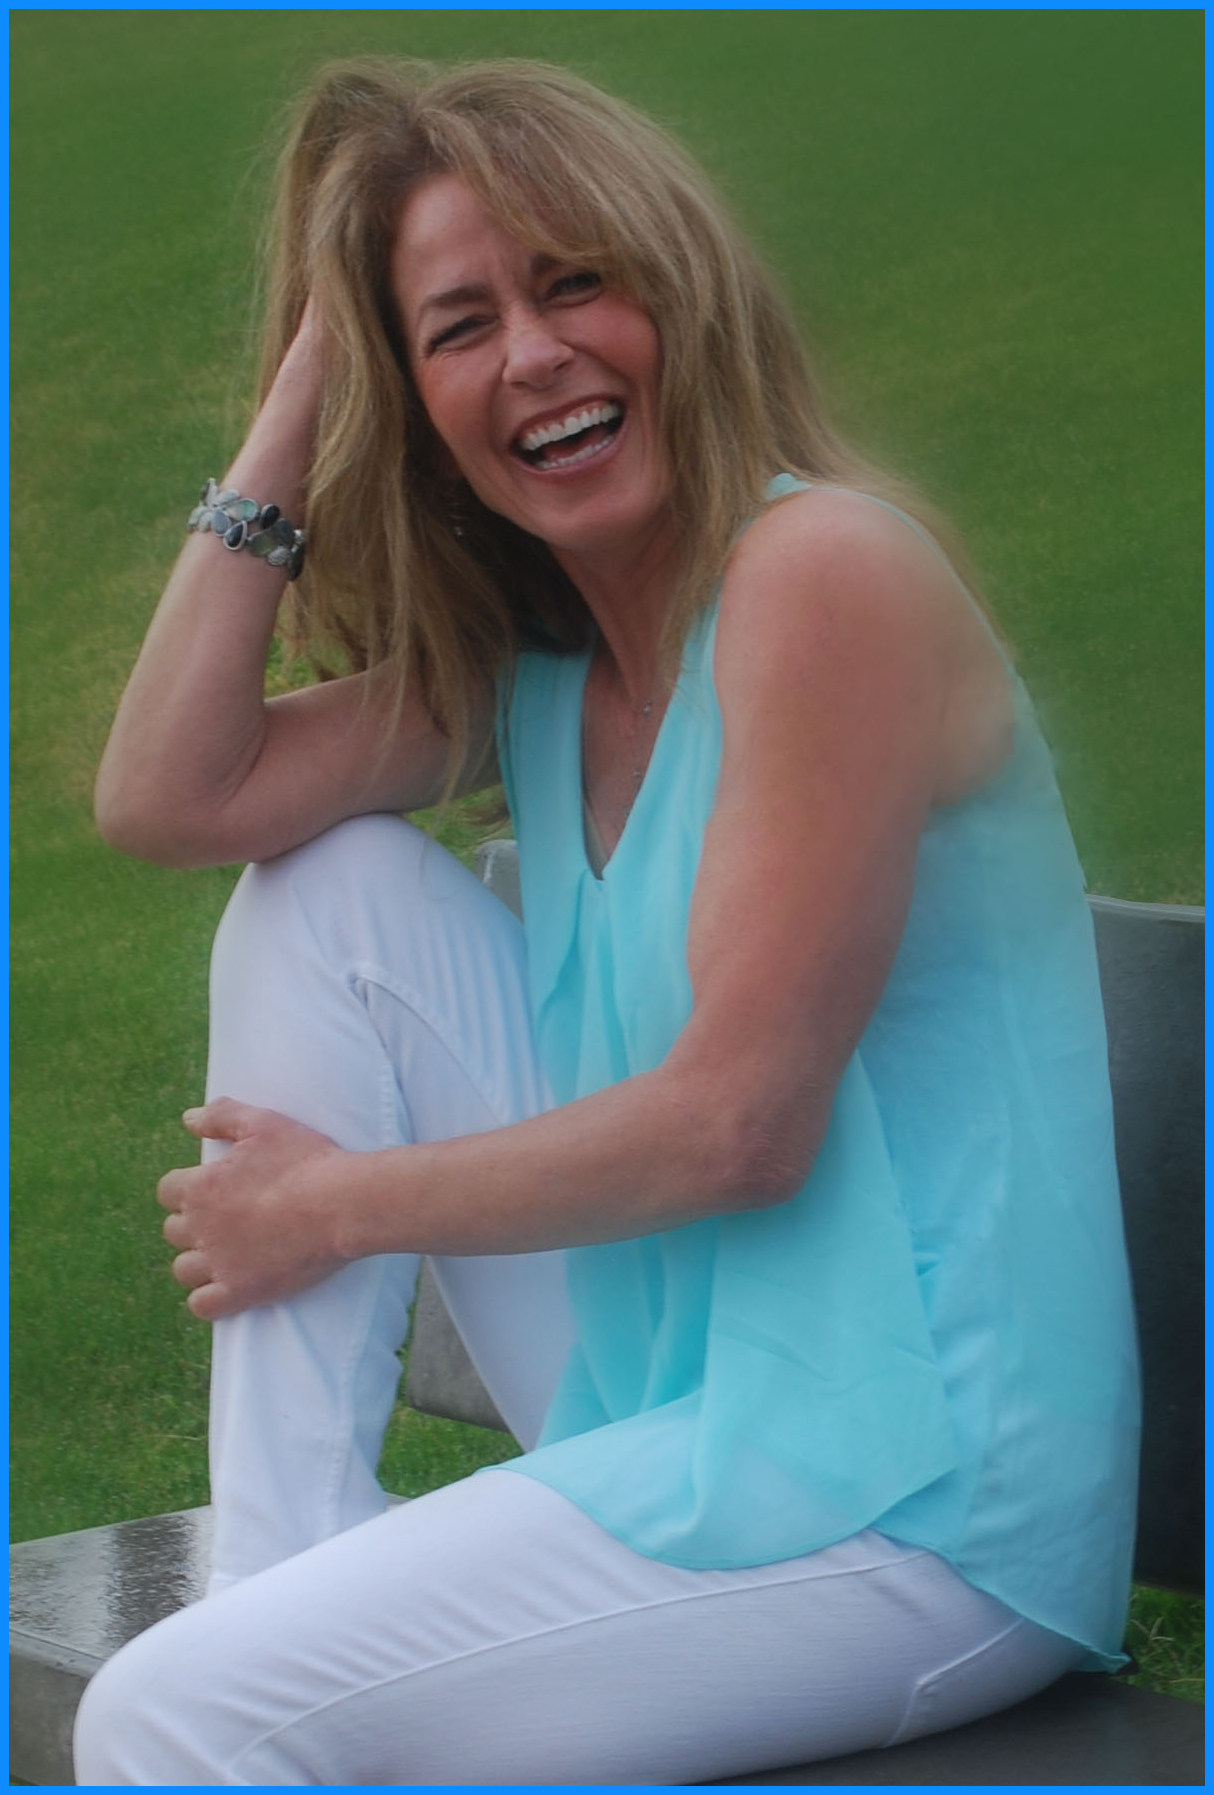 Paula Owens, MS Clinical and Holistic Nutritionist, Functional Health Practitioner